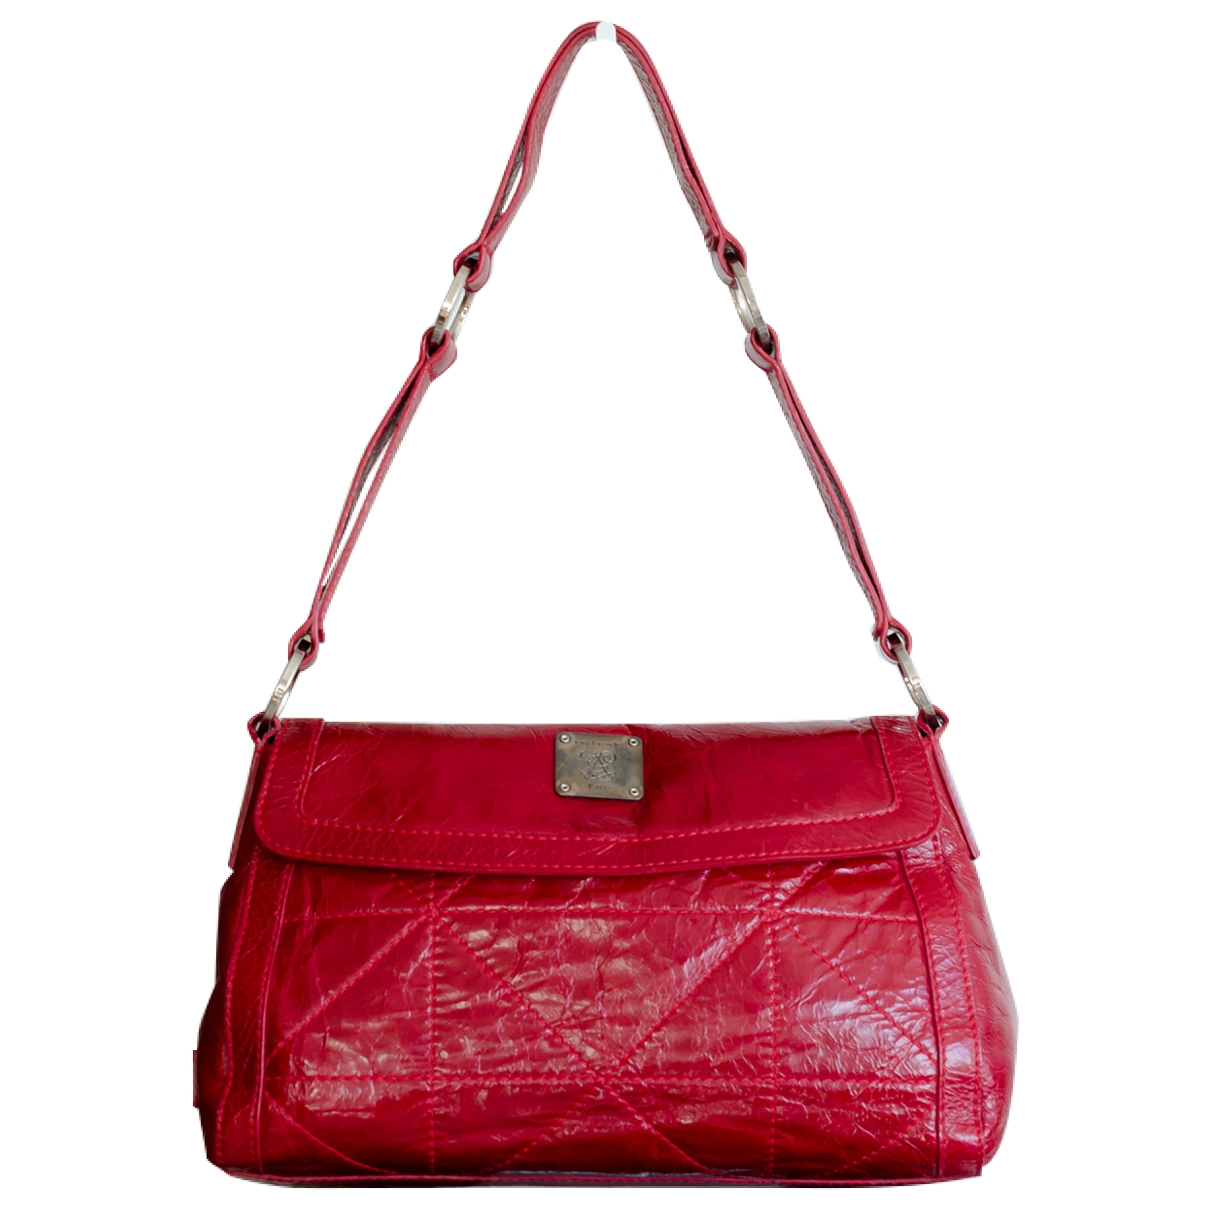 Guy Laroche \N Handtasche in  Rot Lackleder